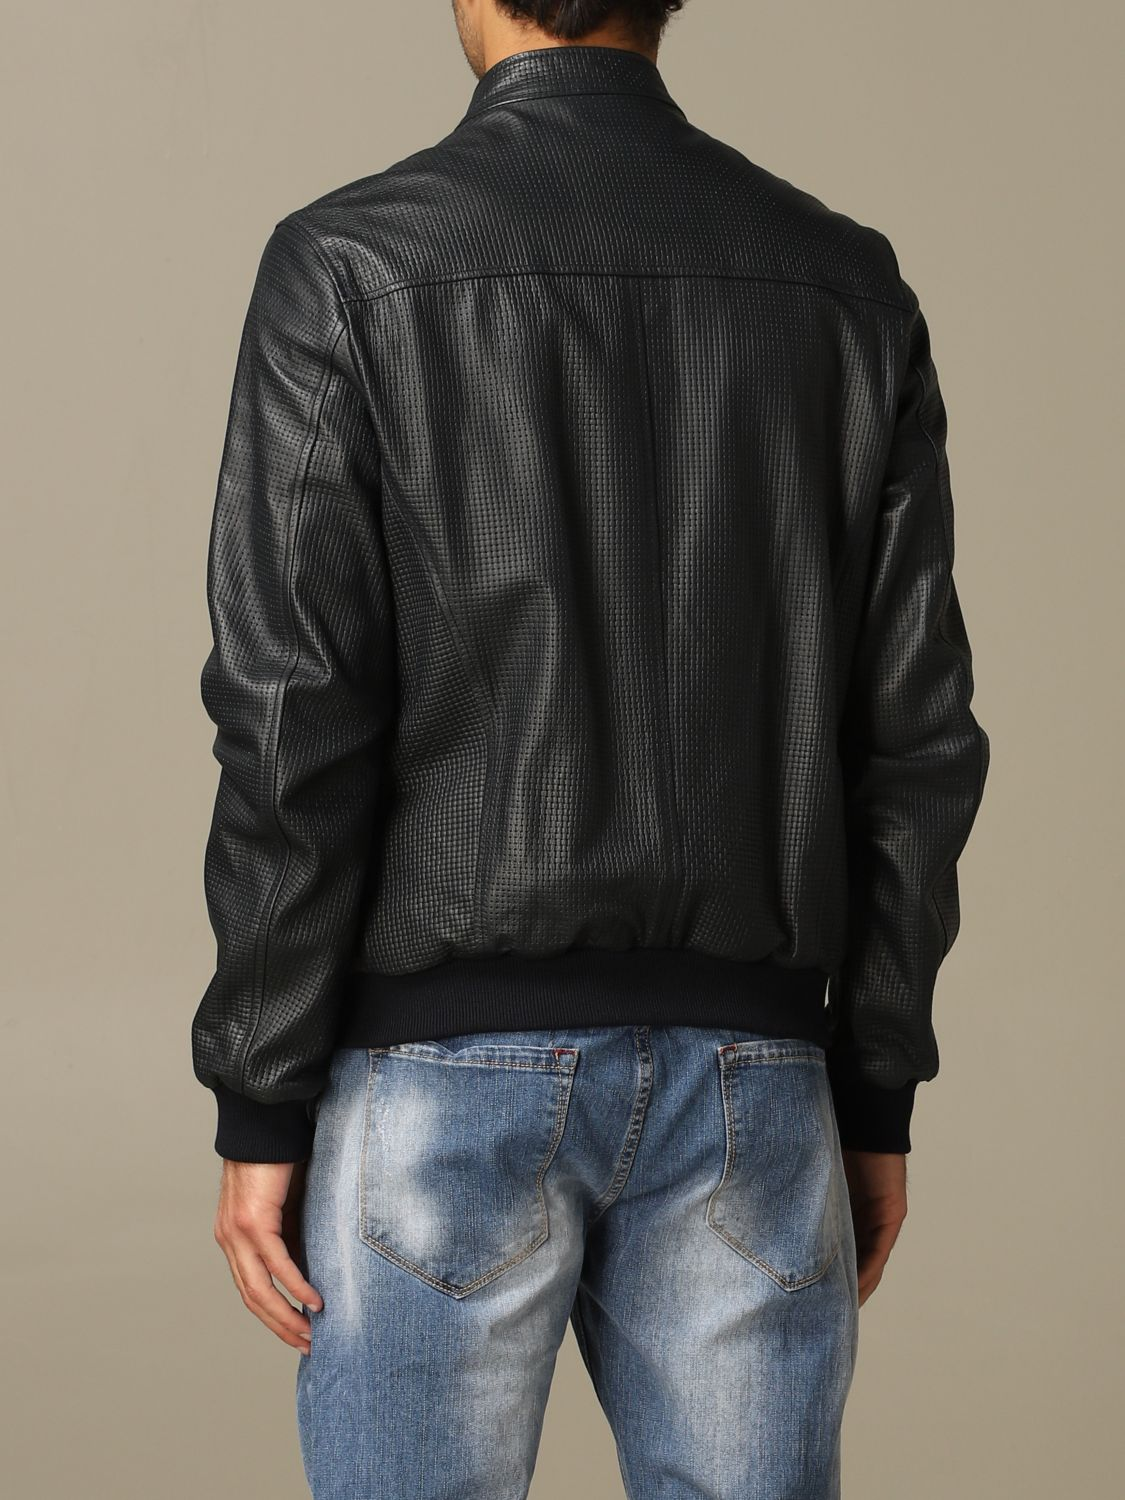 Jacket Alessandro Dell'acqua: Alessandro Dell'acqua bomber jacket in real leather blue 2